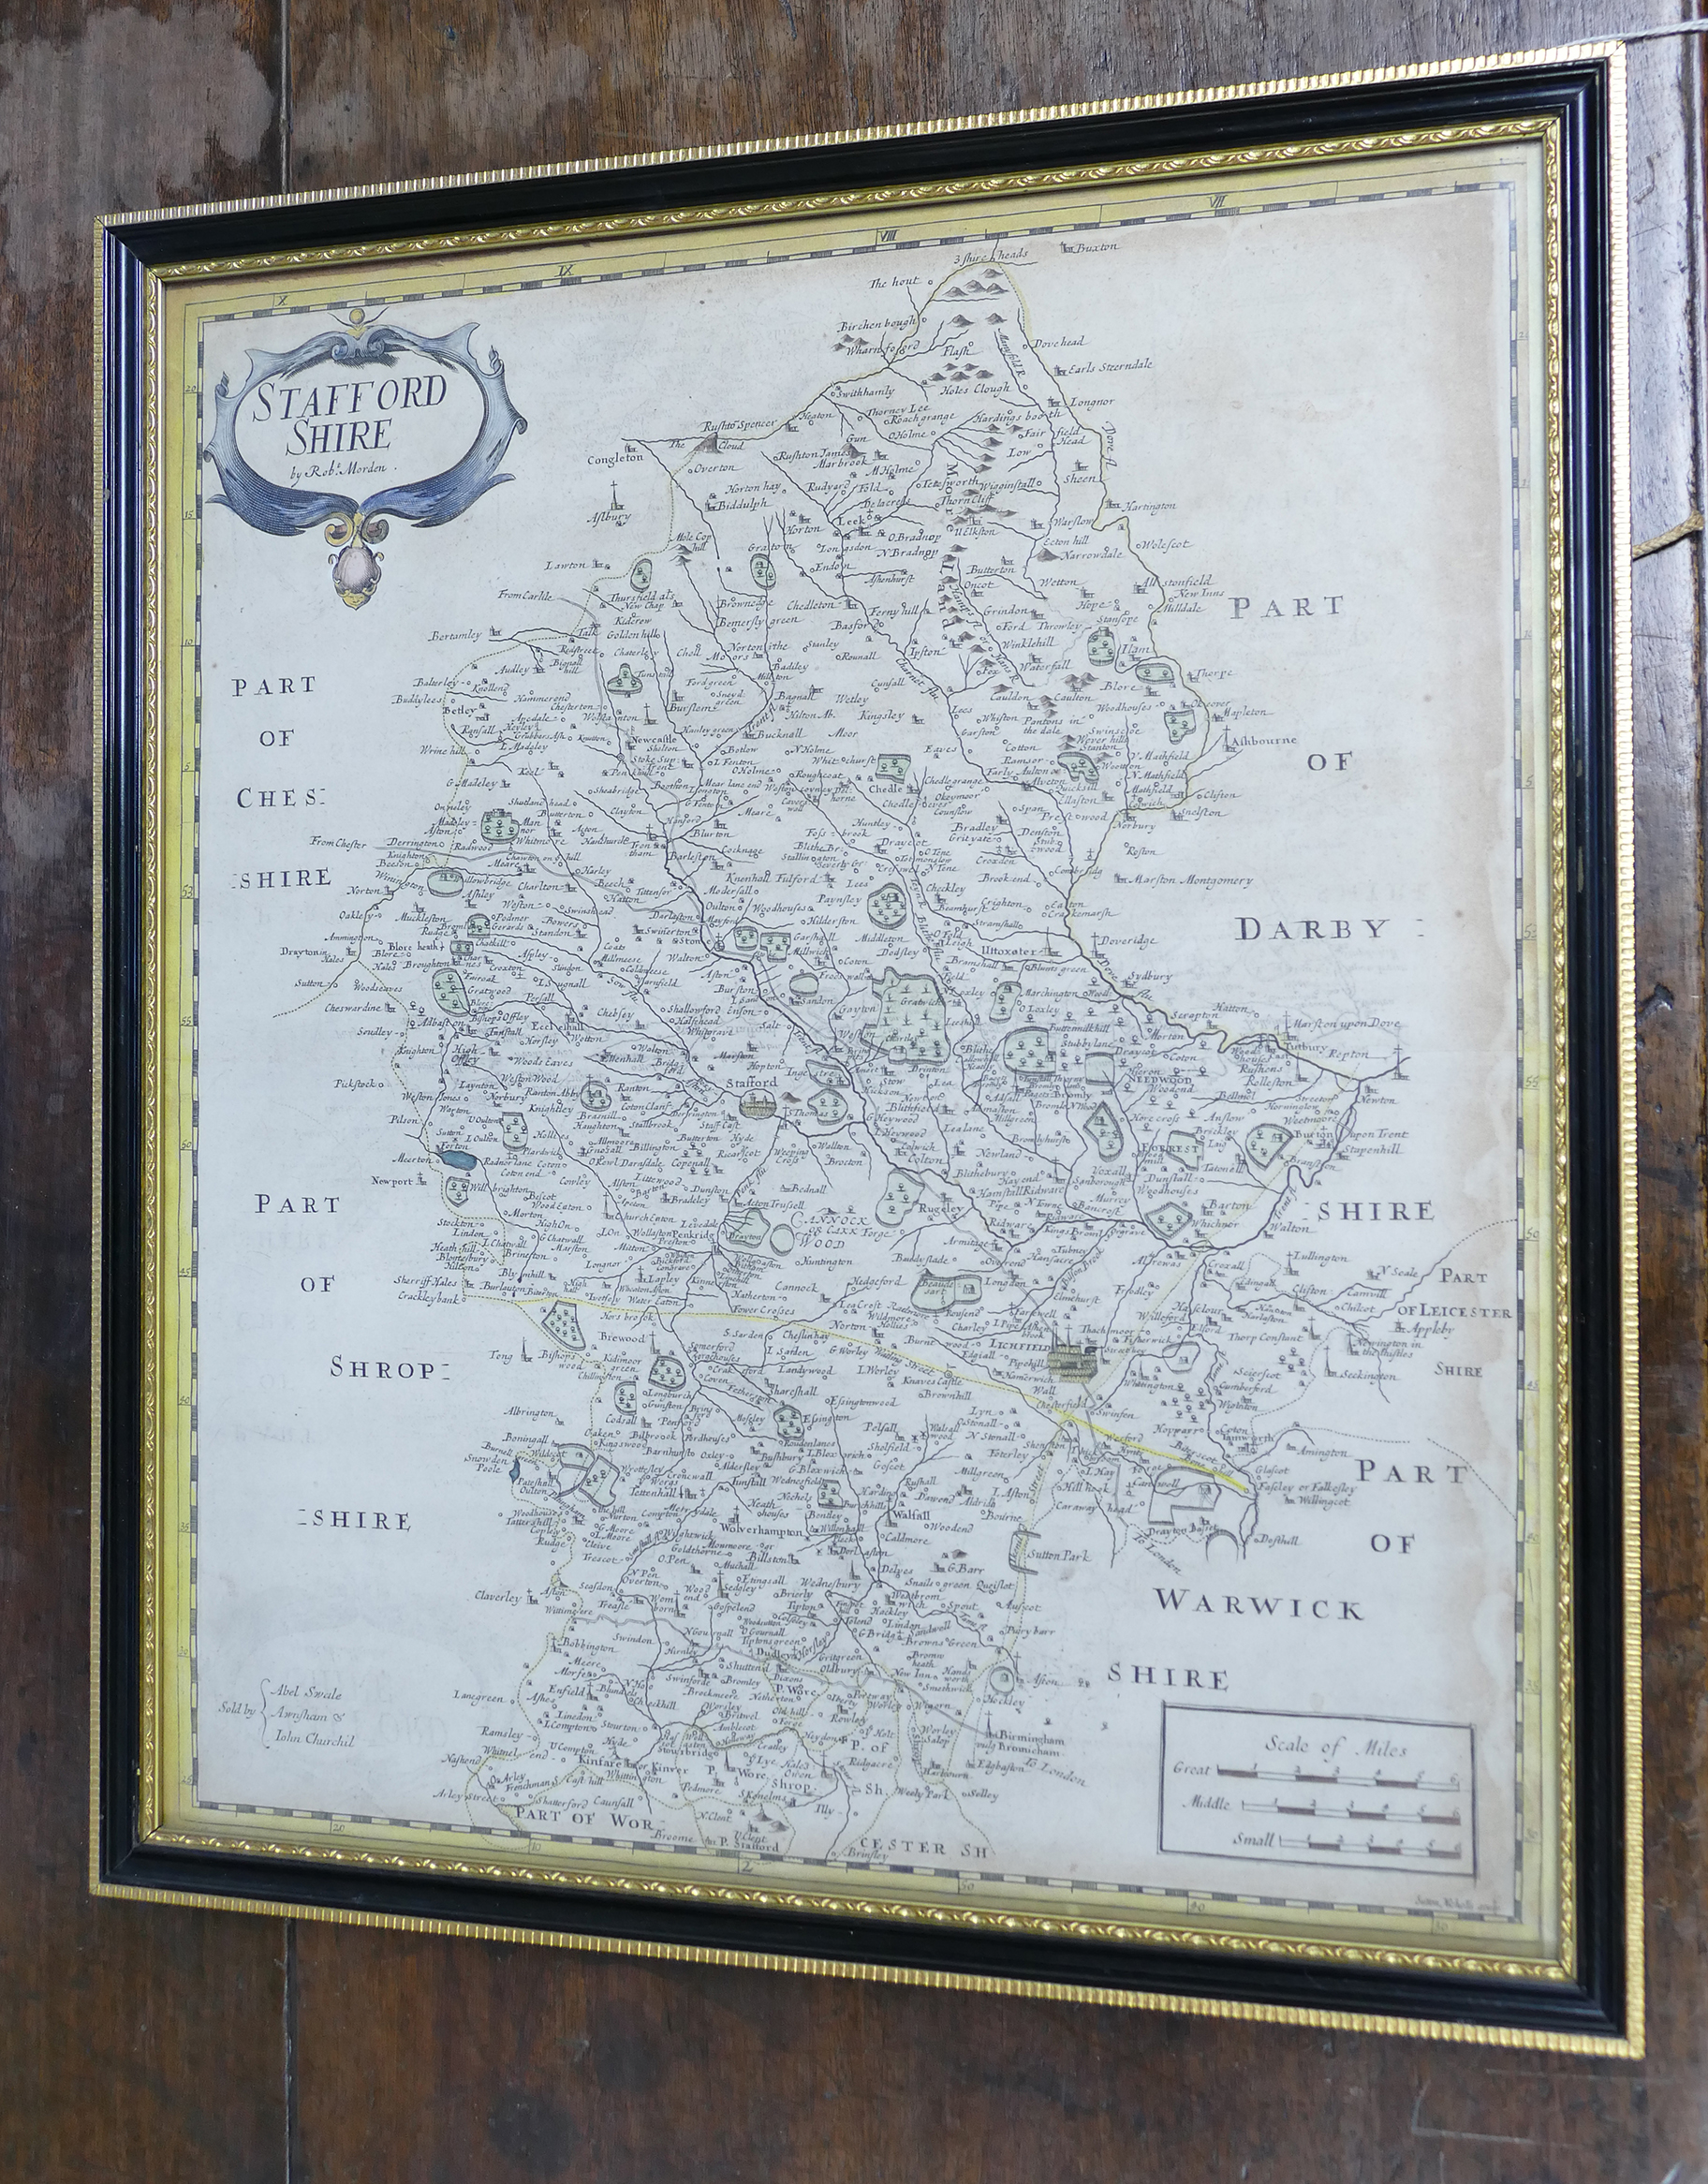 Lot 427 - A early map of Staffordshire by Robt. Mo